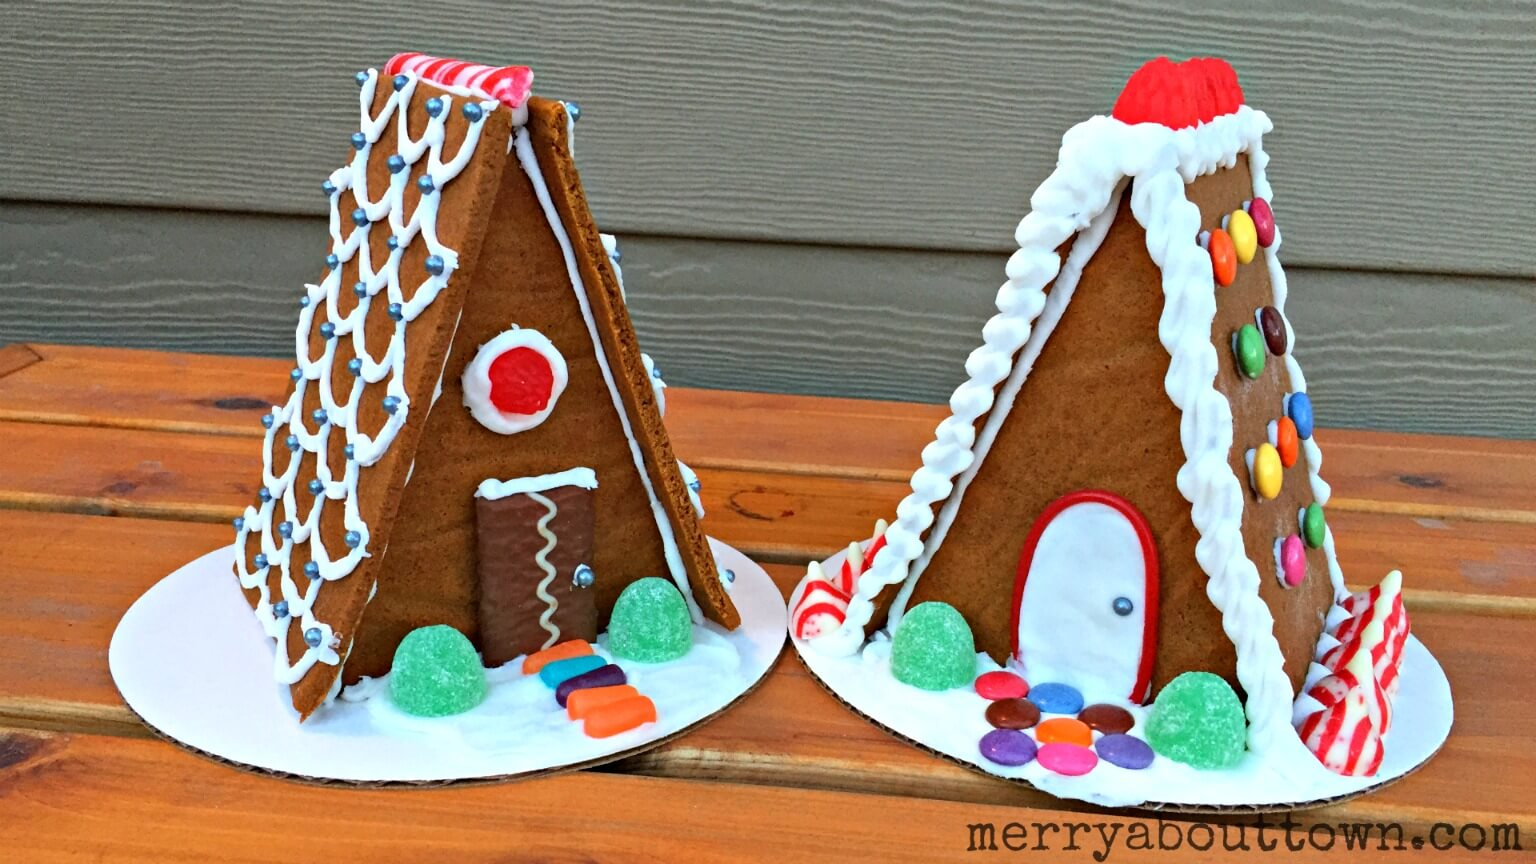 Make Your Own Homemade Gingerbread House Merry About Town